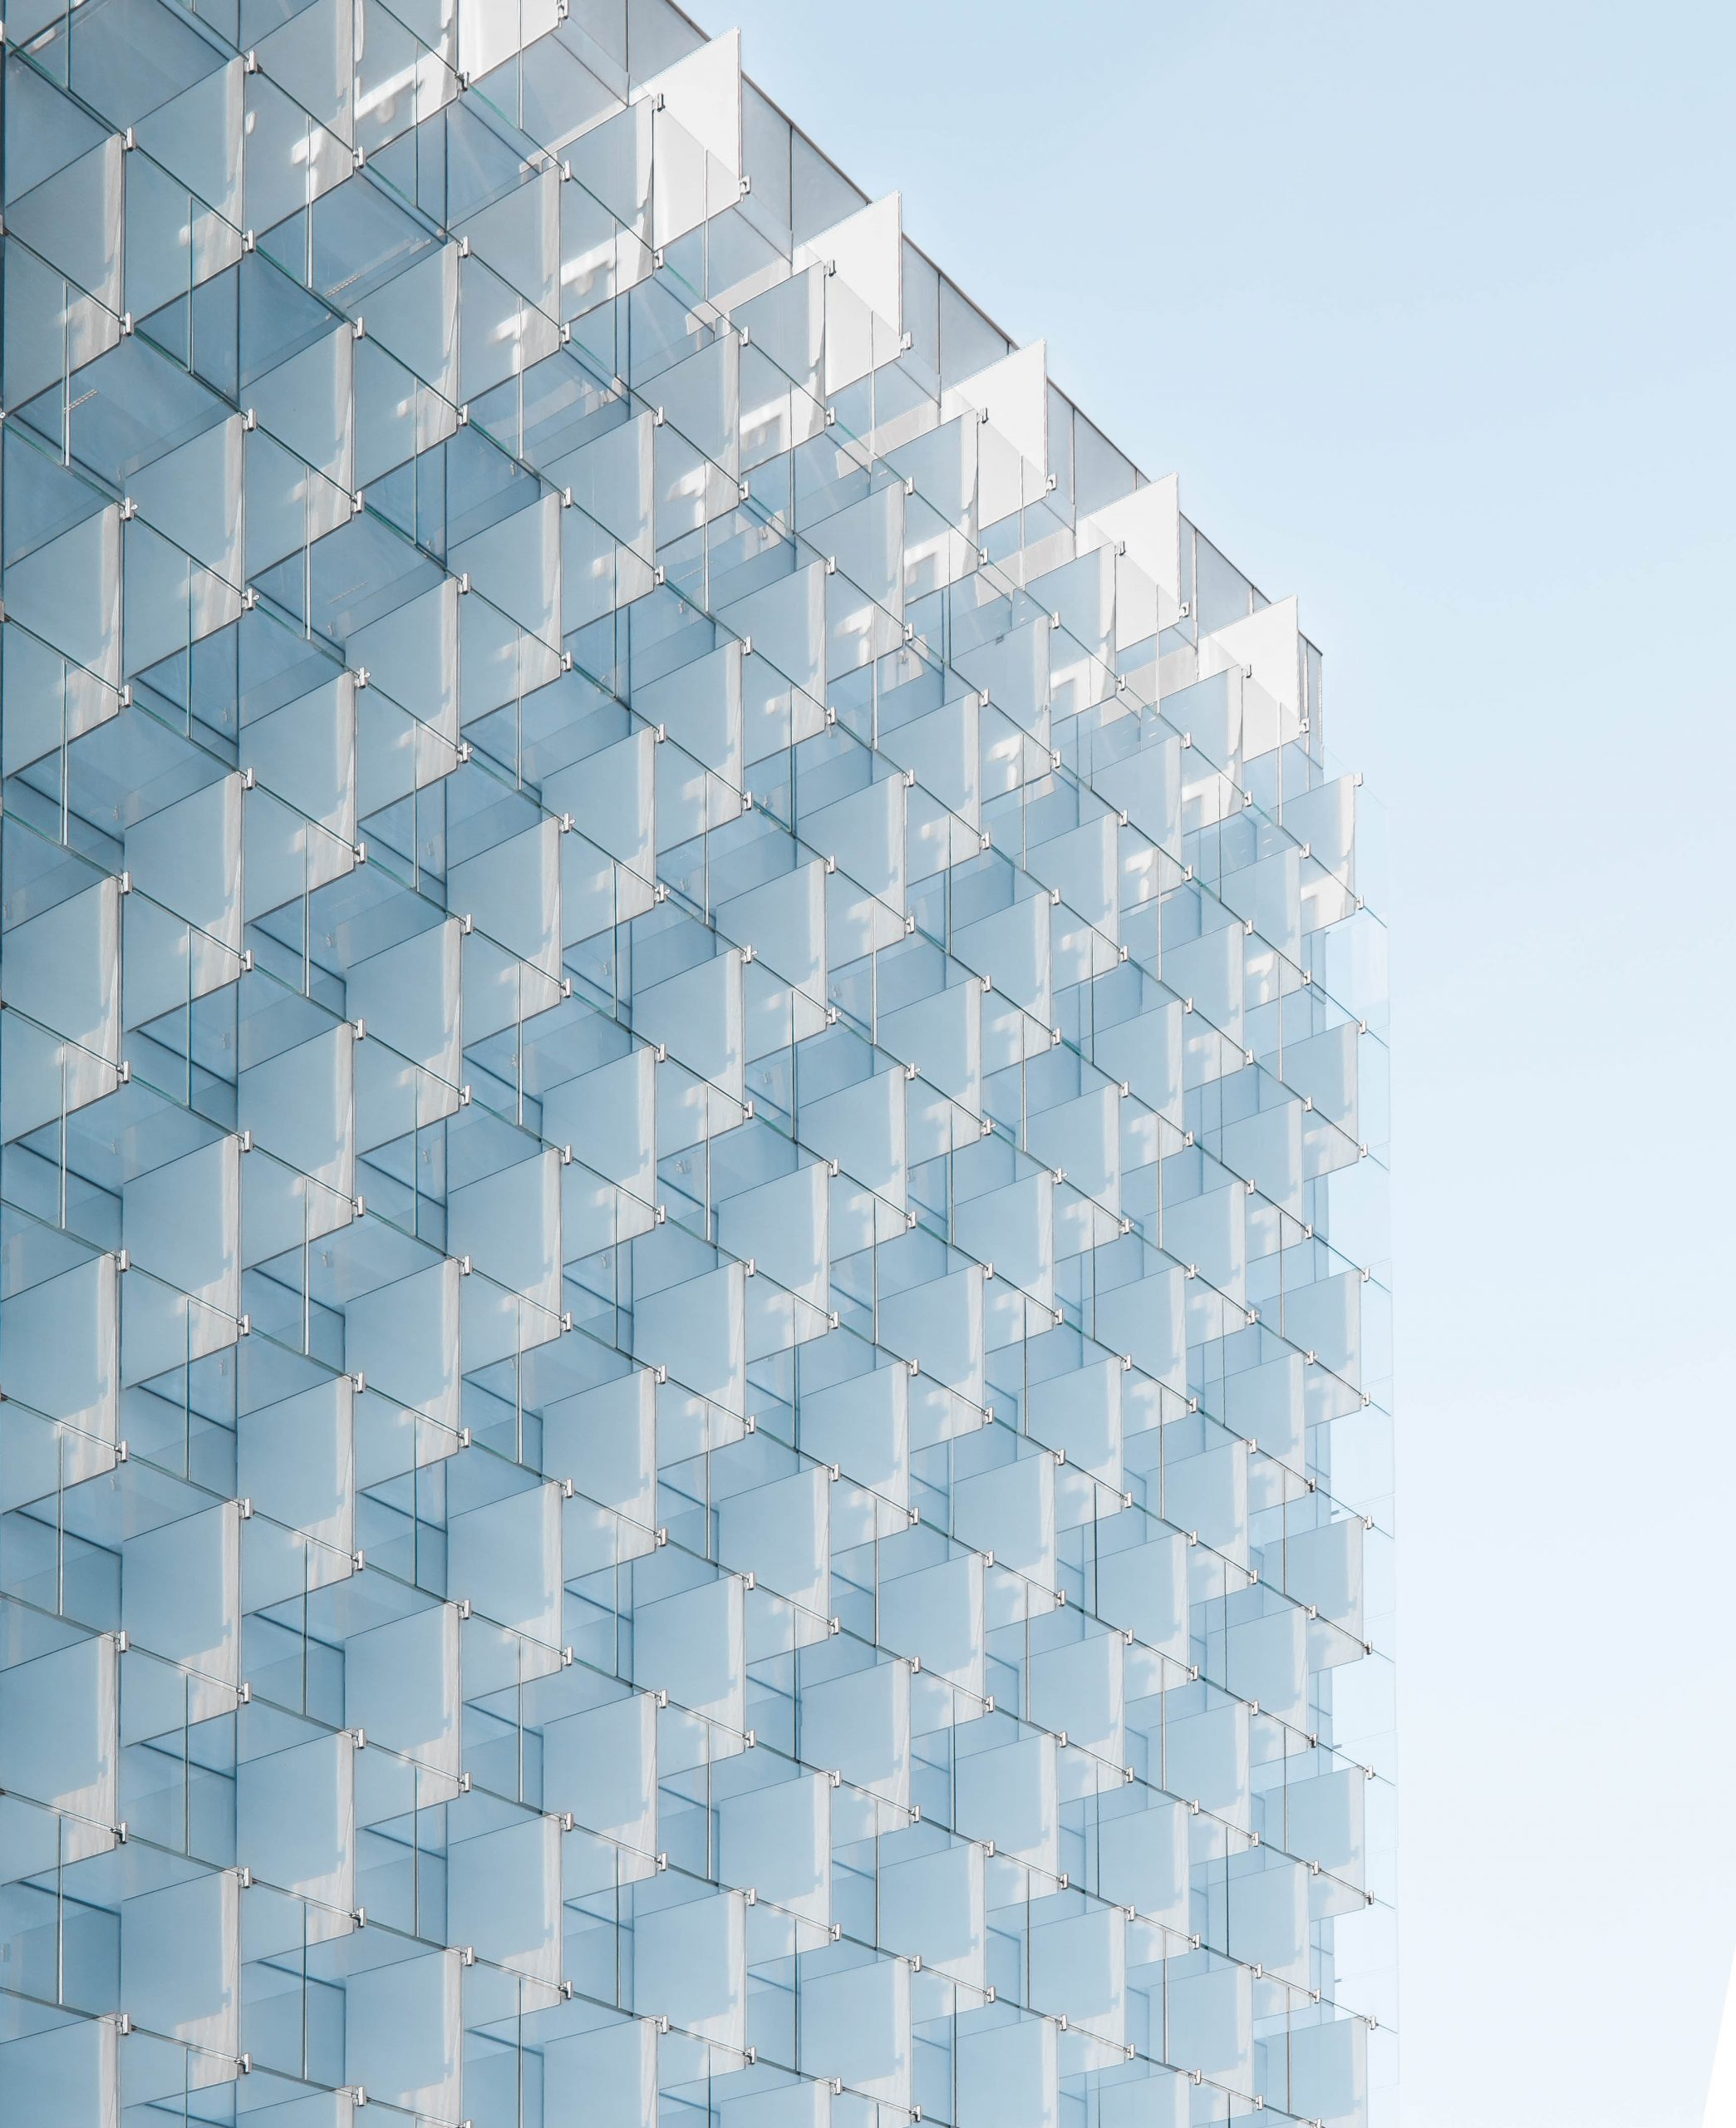 wallpaper Clear glass building